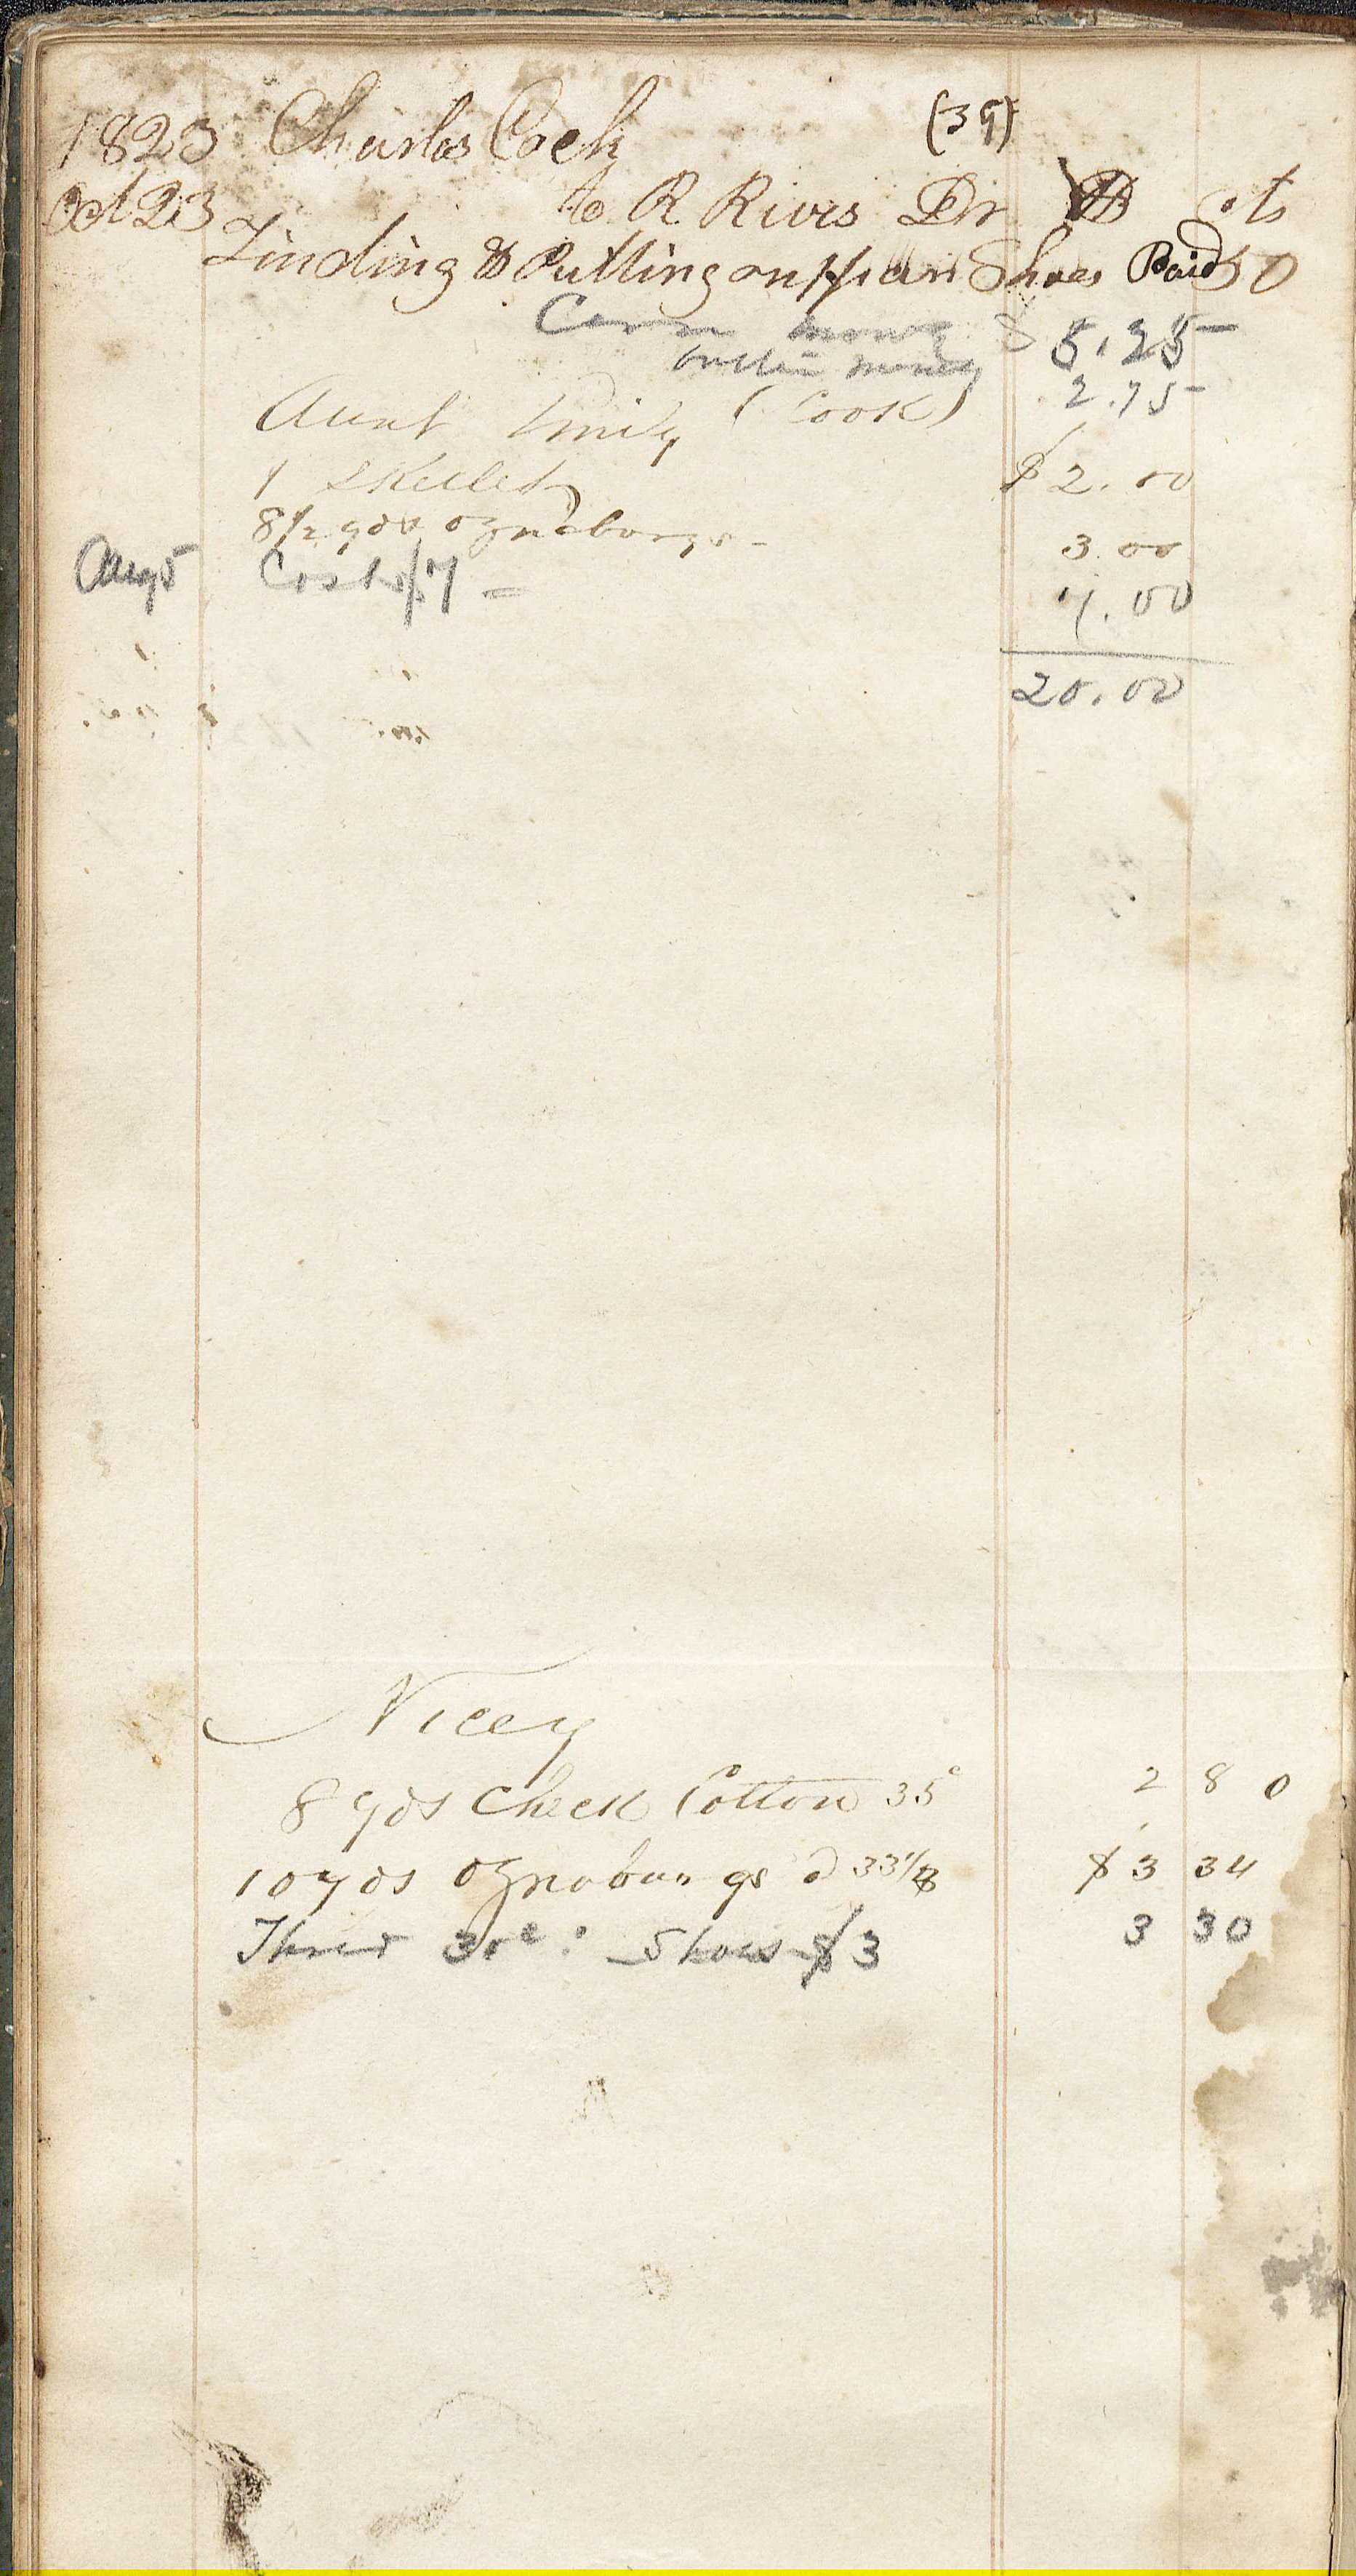 "In an account book held by the Special Collections Library Rives purchases   8 yards of check cotton and 10 yards of Osnaburg  fabric for Nicey  for $6.14. On the opposite page of  Nicey's entry is written the name Isham and under the name ""suit of clothes $18.00. The entry dates listed on 1823 but the entry was to have been made much later. Most likely sometime in the 1840's Robert Rives Blacksmith Shop Account Book, 1823; 1843-1846, Accession #4655 (Image by Regina Rush)"